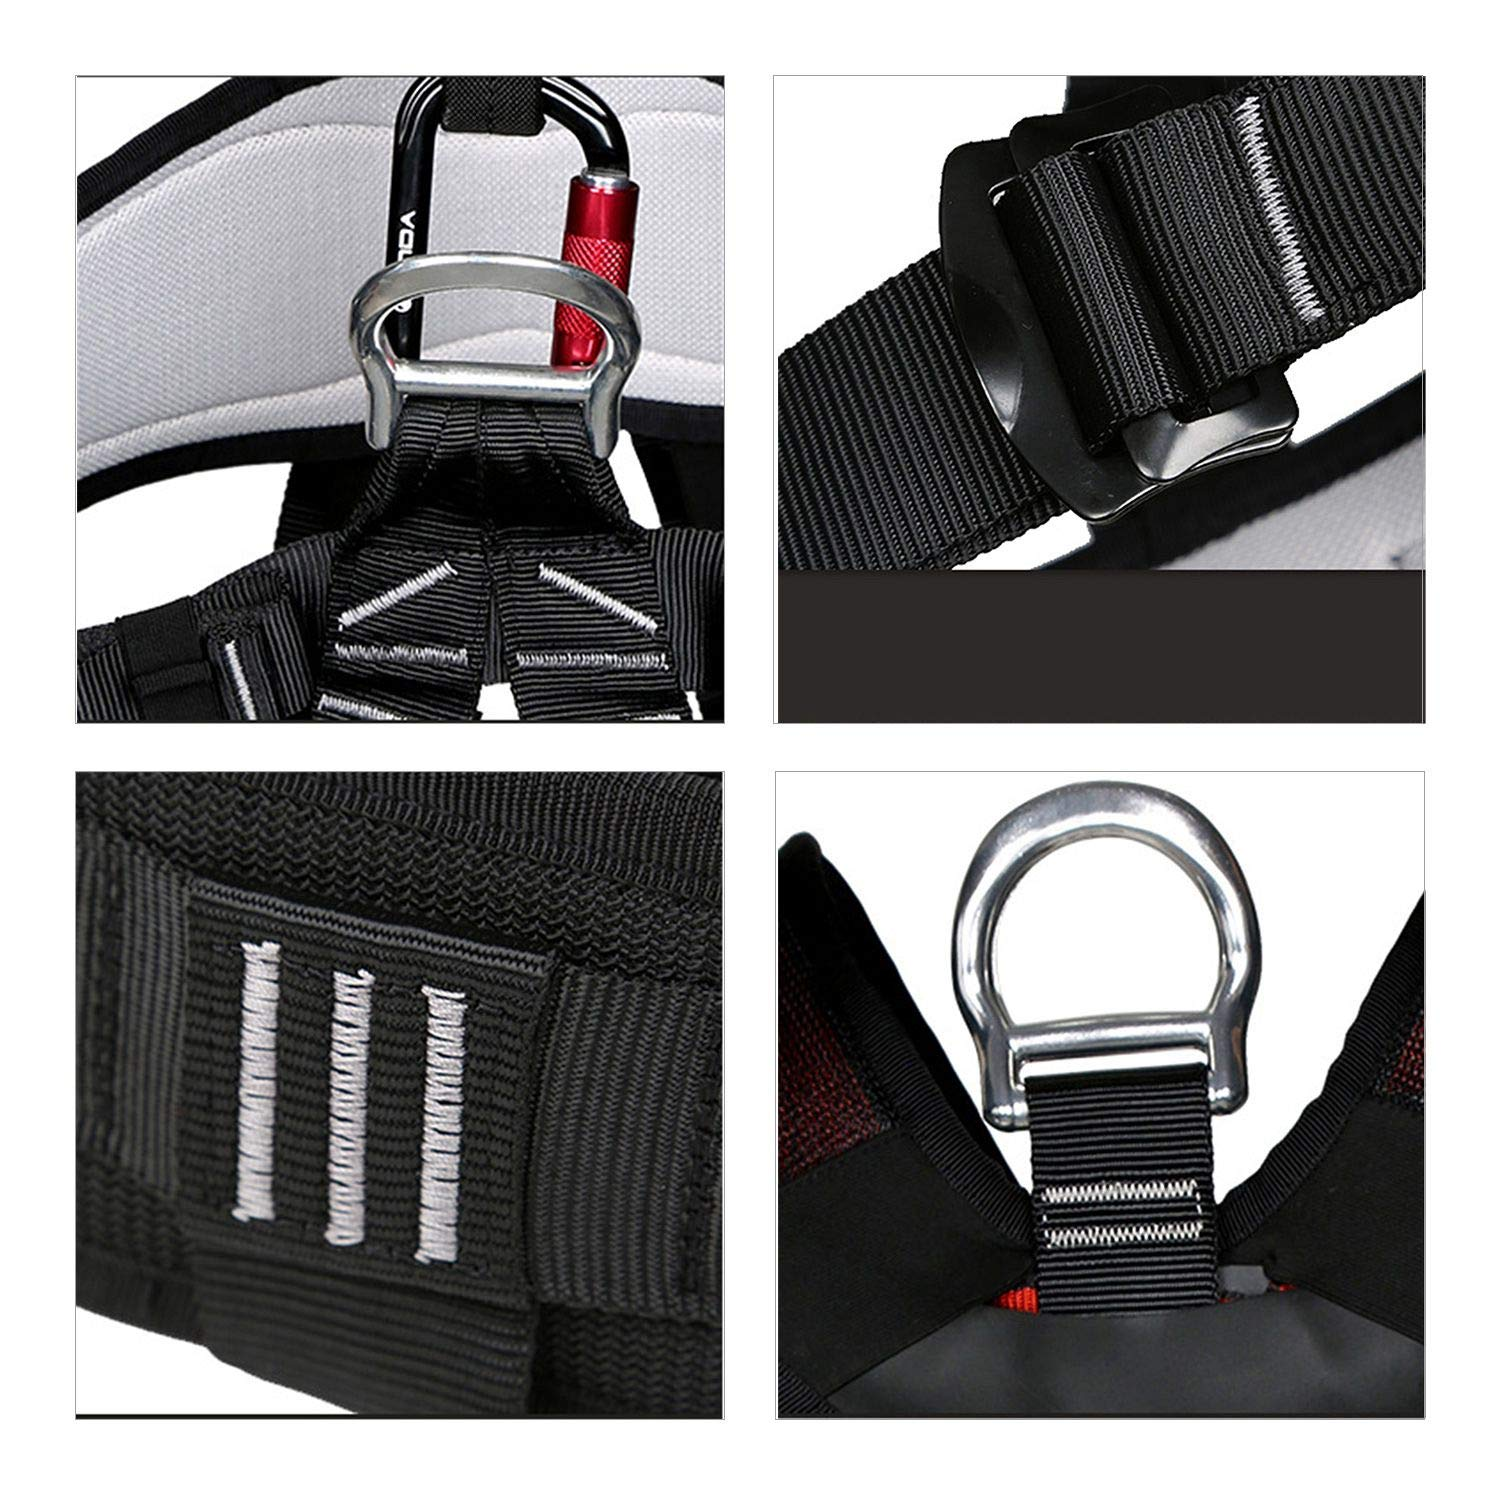 Nrpfell Outdoor Climbing Rock Rappelling Mountaineering Accessories Body Wearing Seat Belt Sitting Waist Bust Protection by Nrpfell (Image #5)